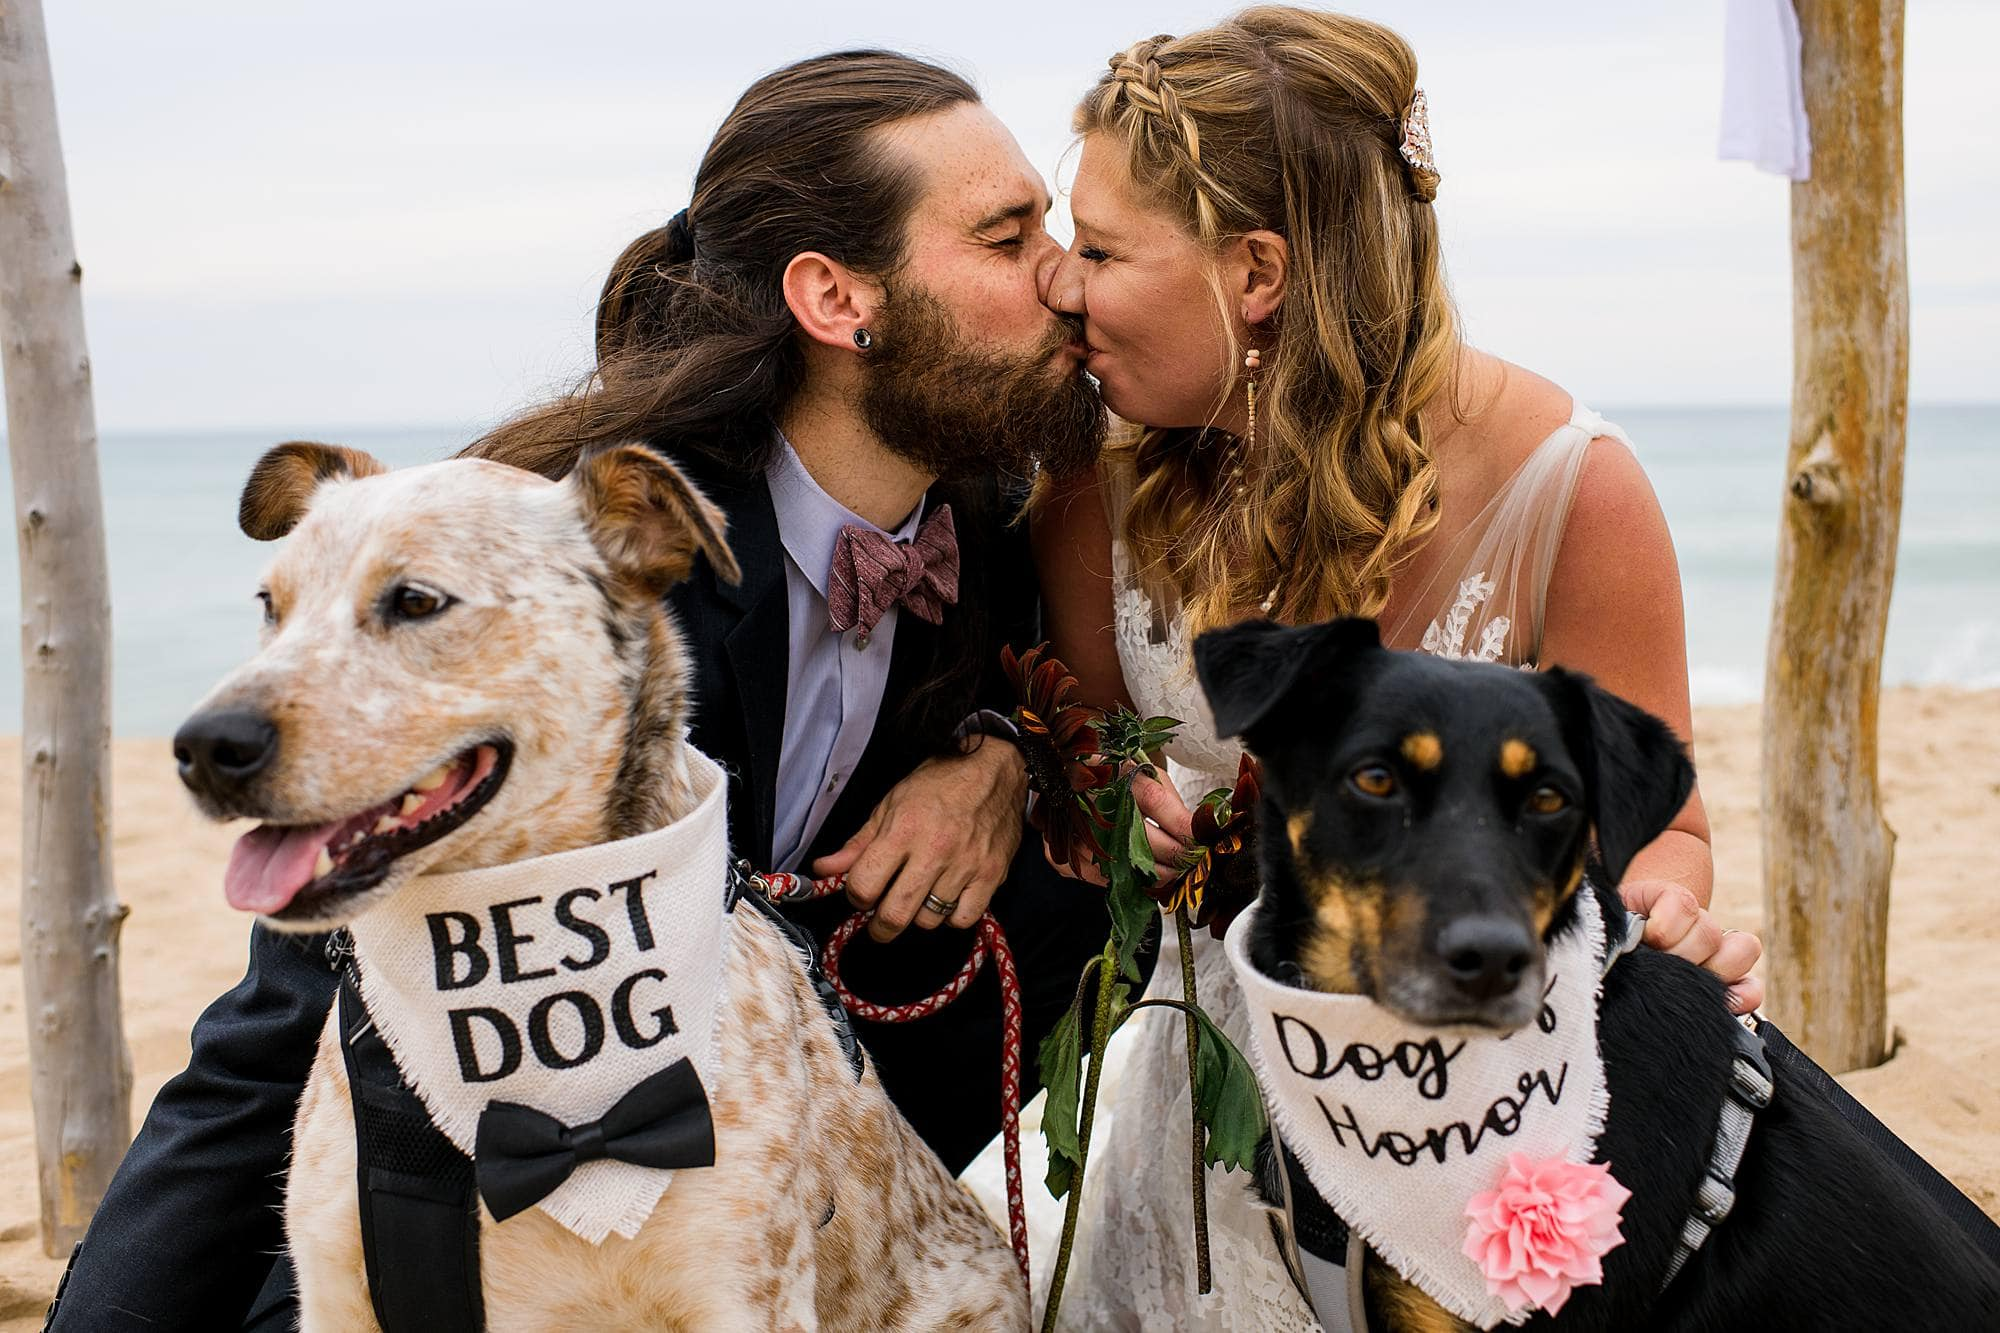 best dog and dog of honor during wedding